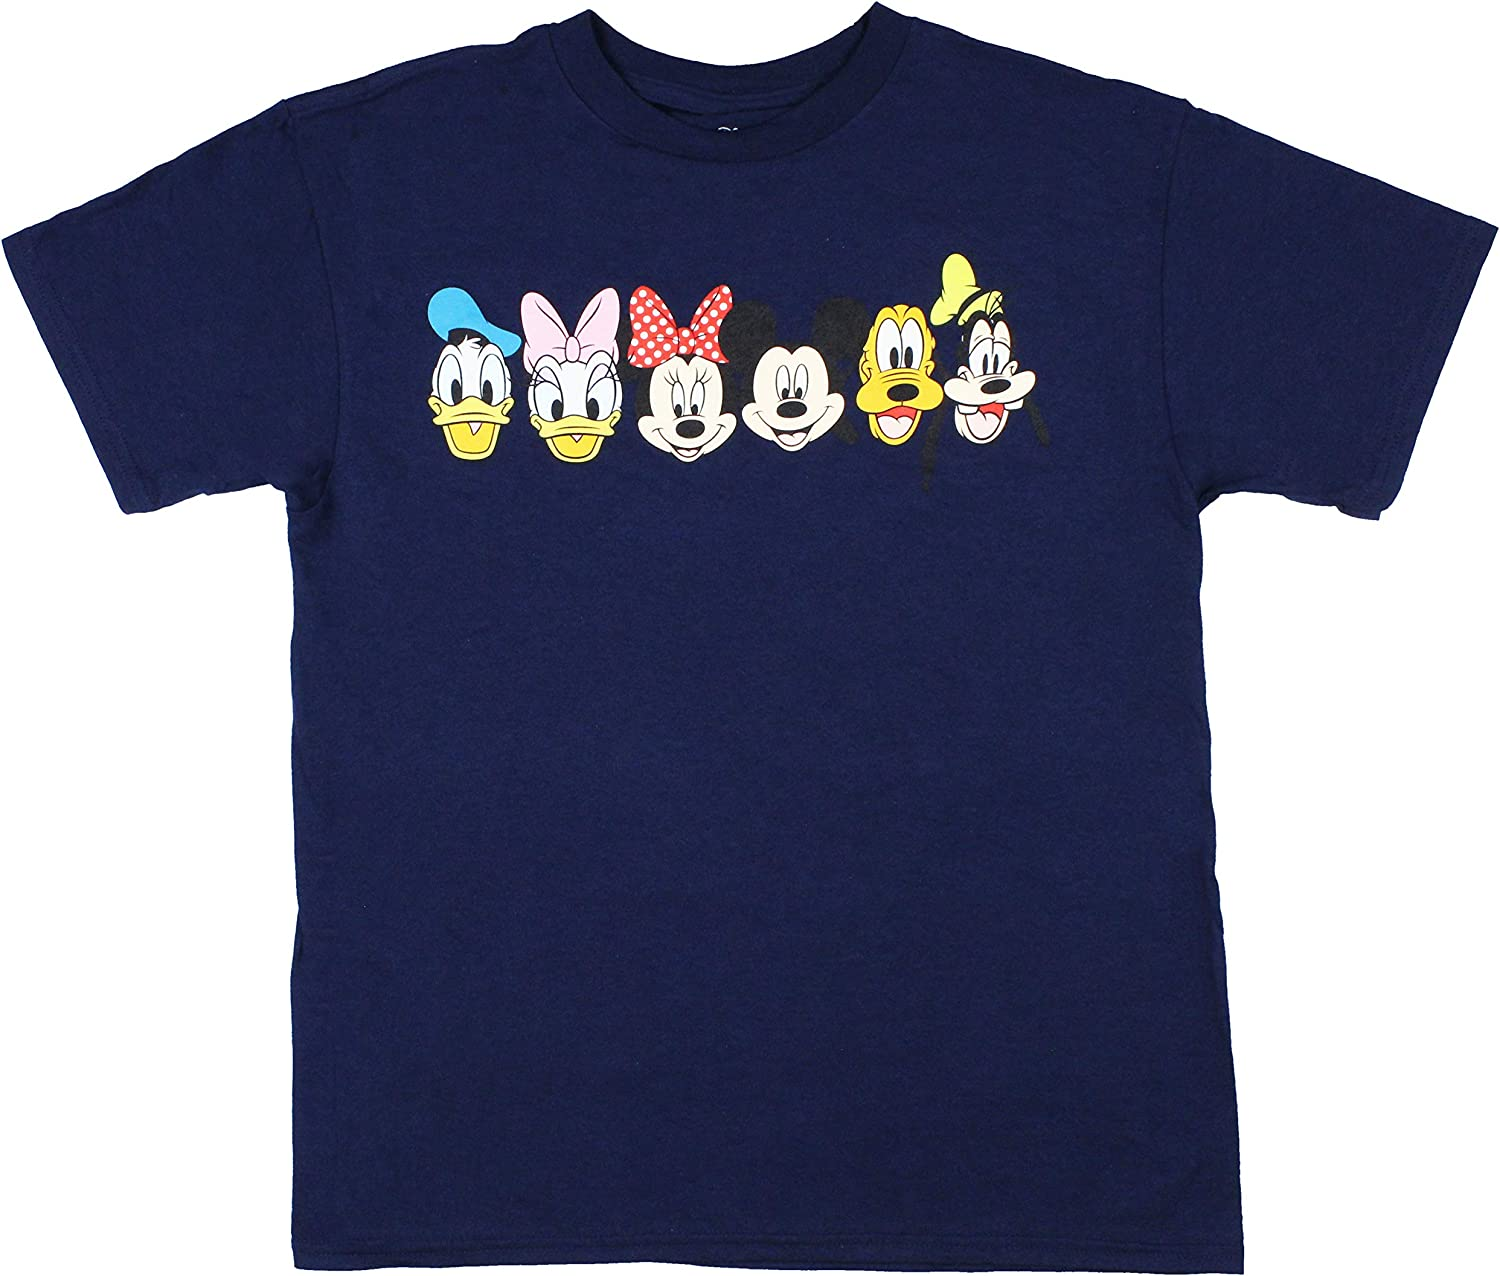 Disney Mickey Mouse and Friends Line Up Boy's T-Shirt